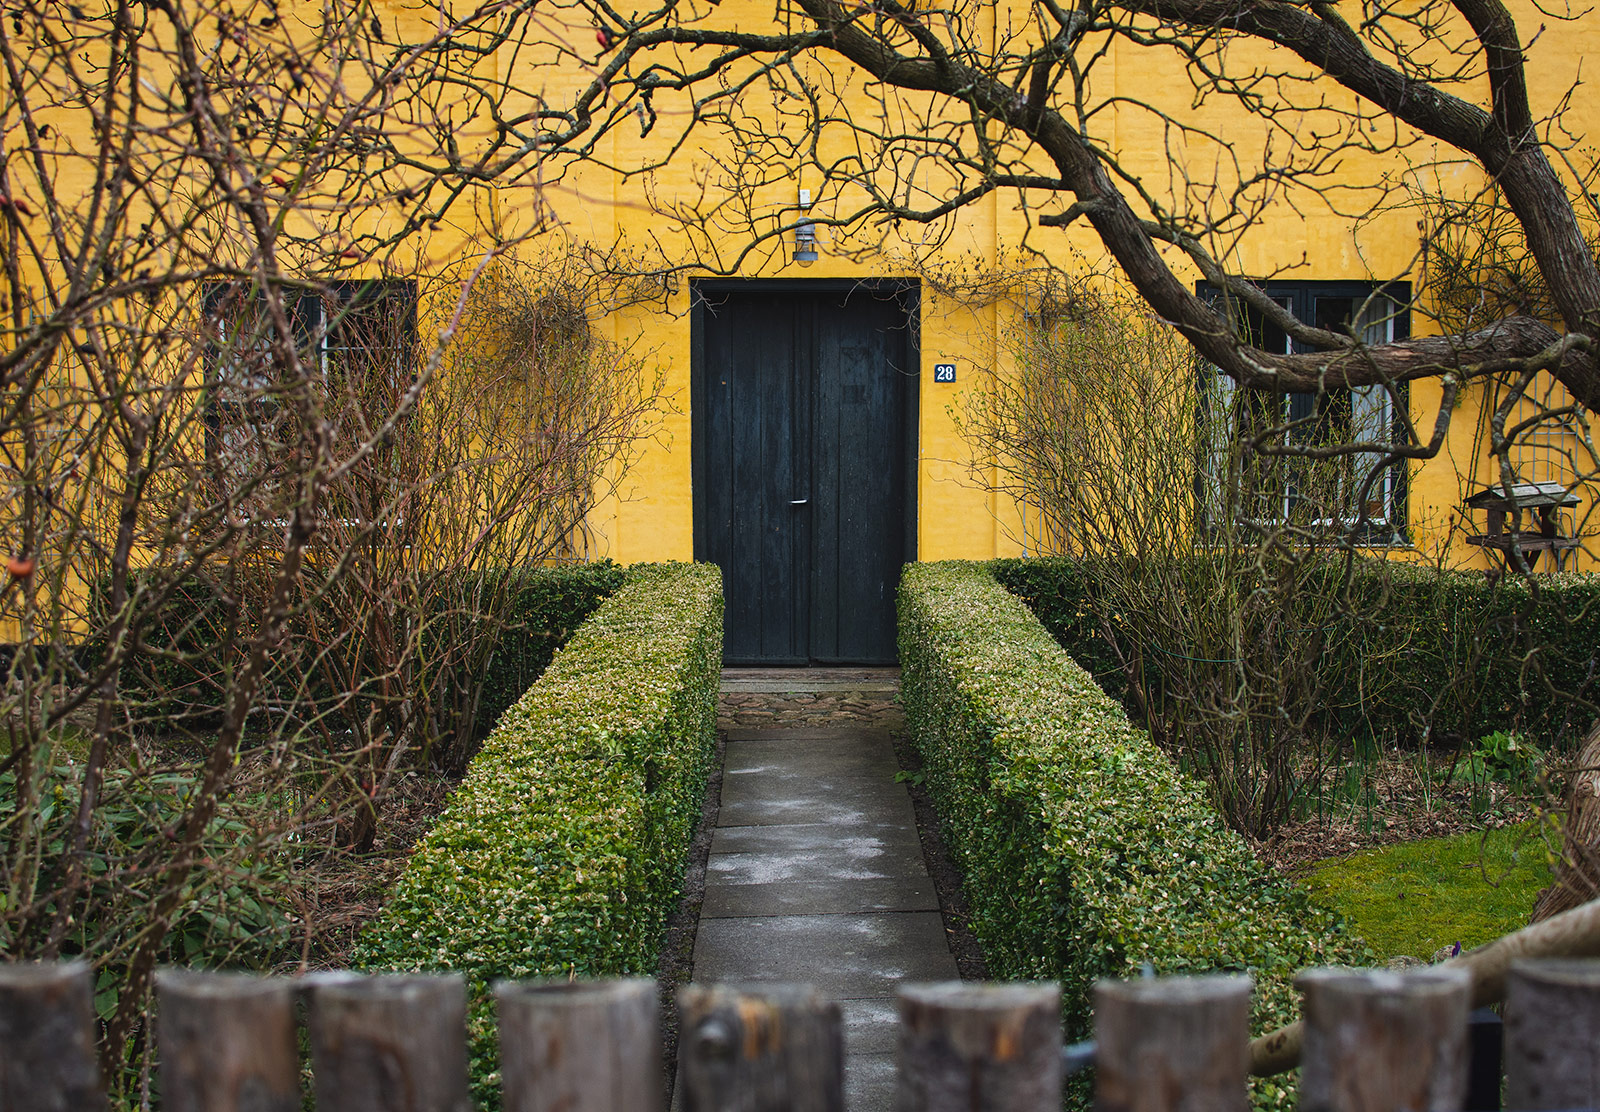 Black door on yellow building